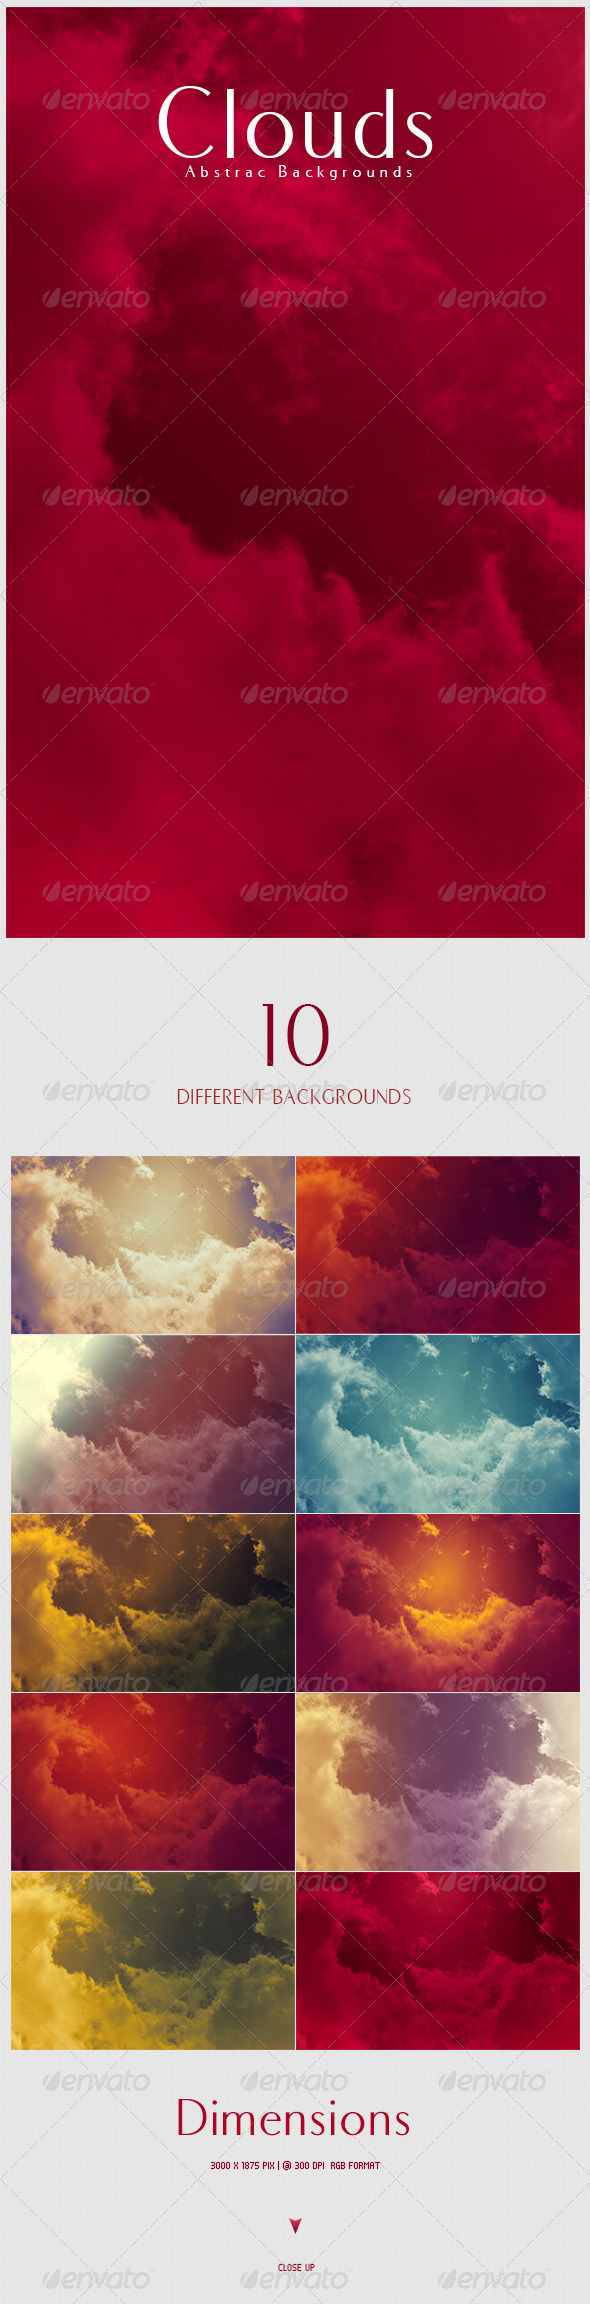 GraphicRiver Clouds Abstract Backgrounds 4826604